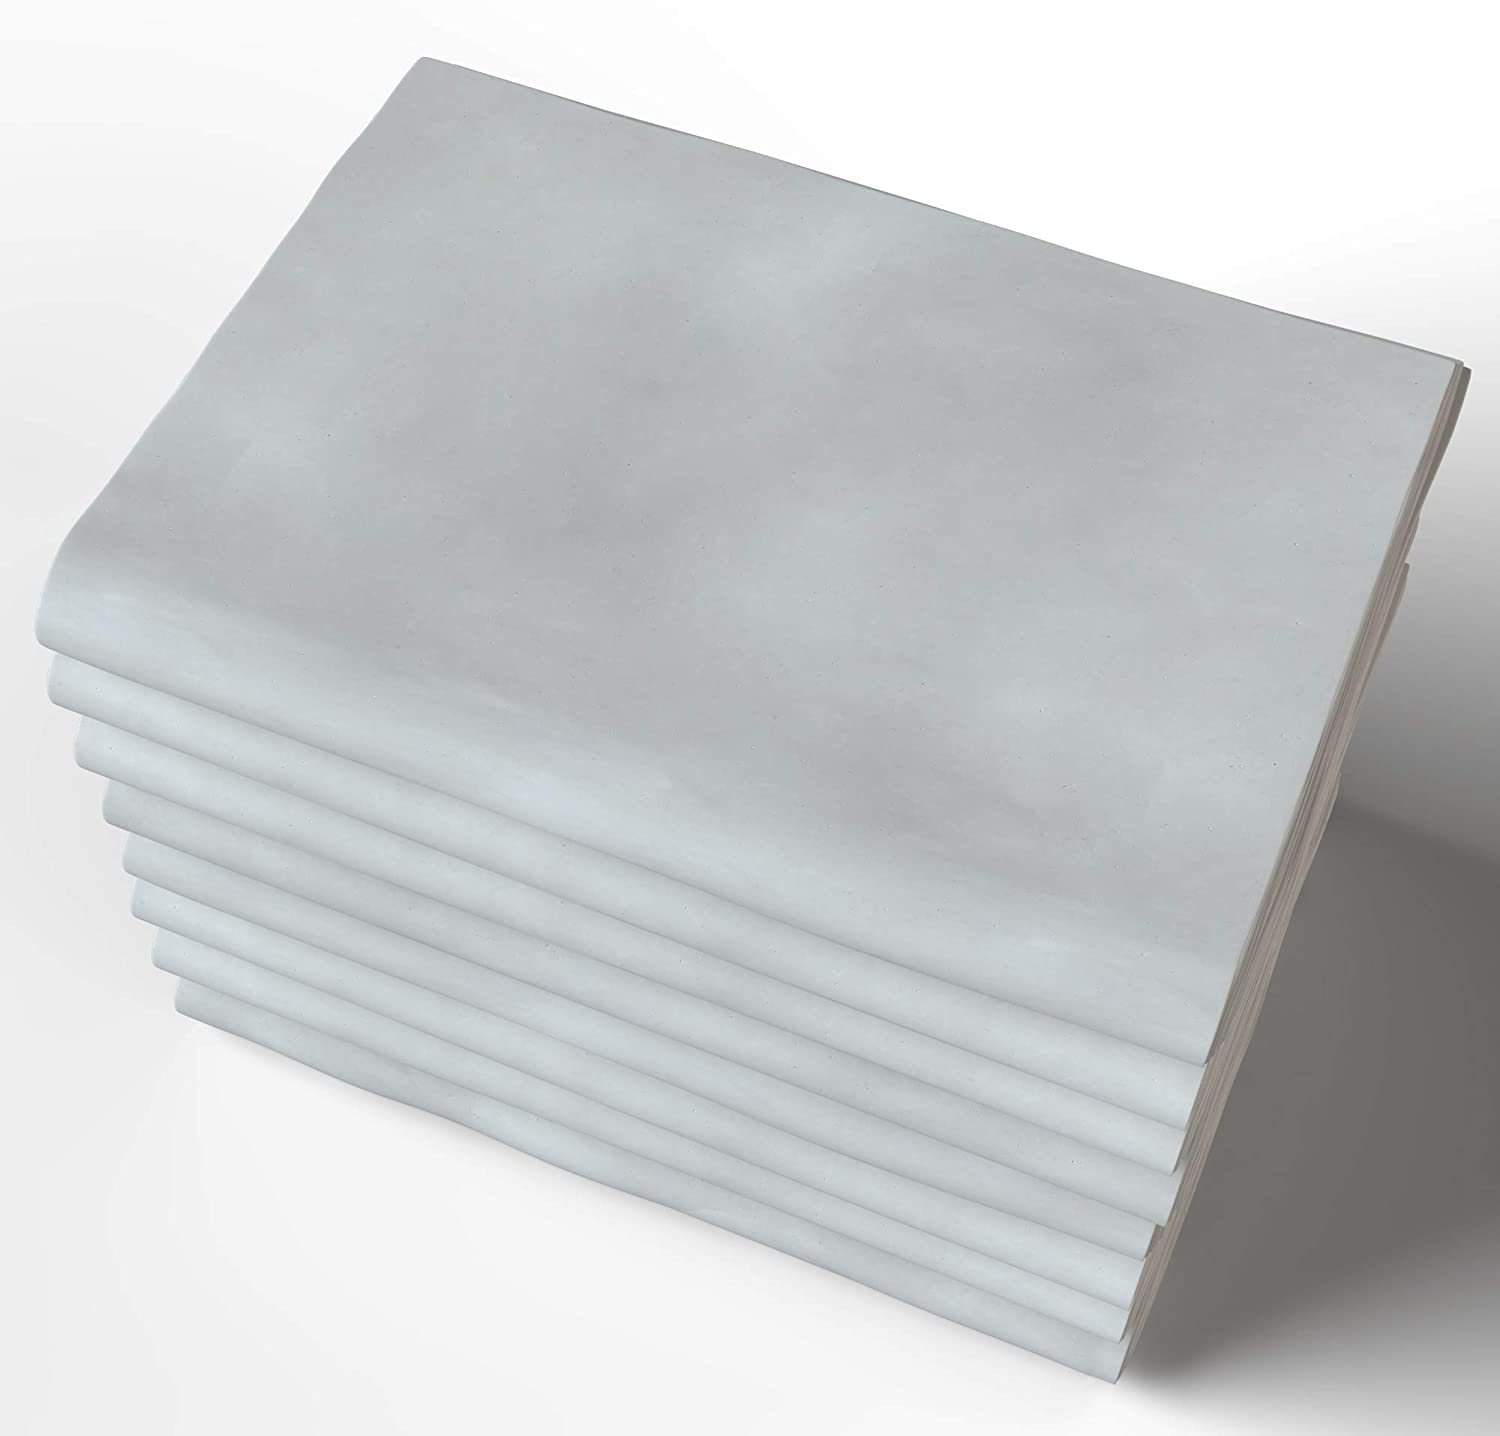 Packing Paper Sheets for Moving 31 x 21.5 Newsprint Paper Must Have in Your Moving Supplies 20 lb 480 Sheets